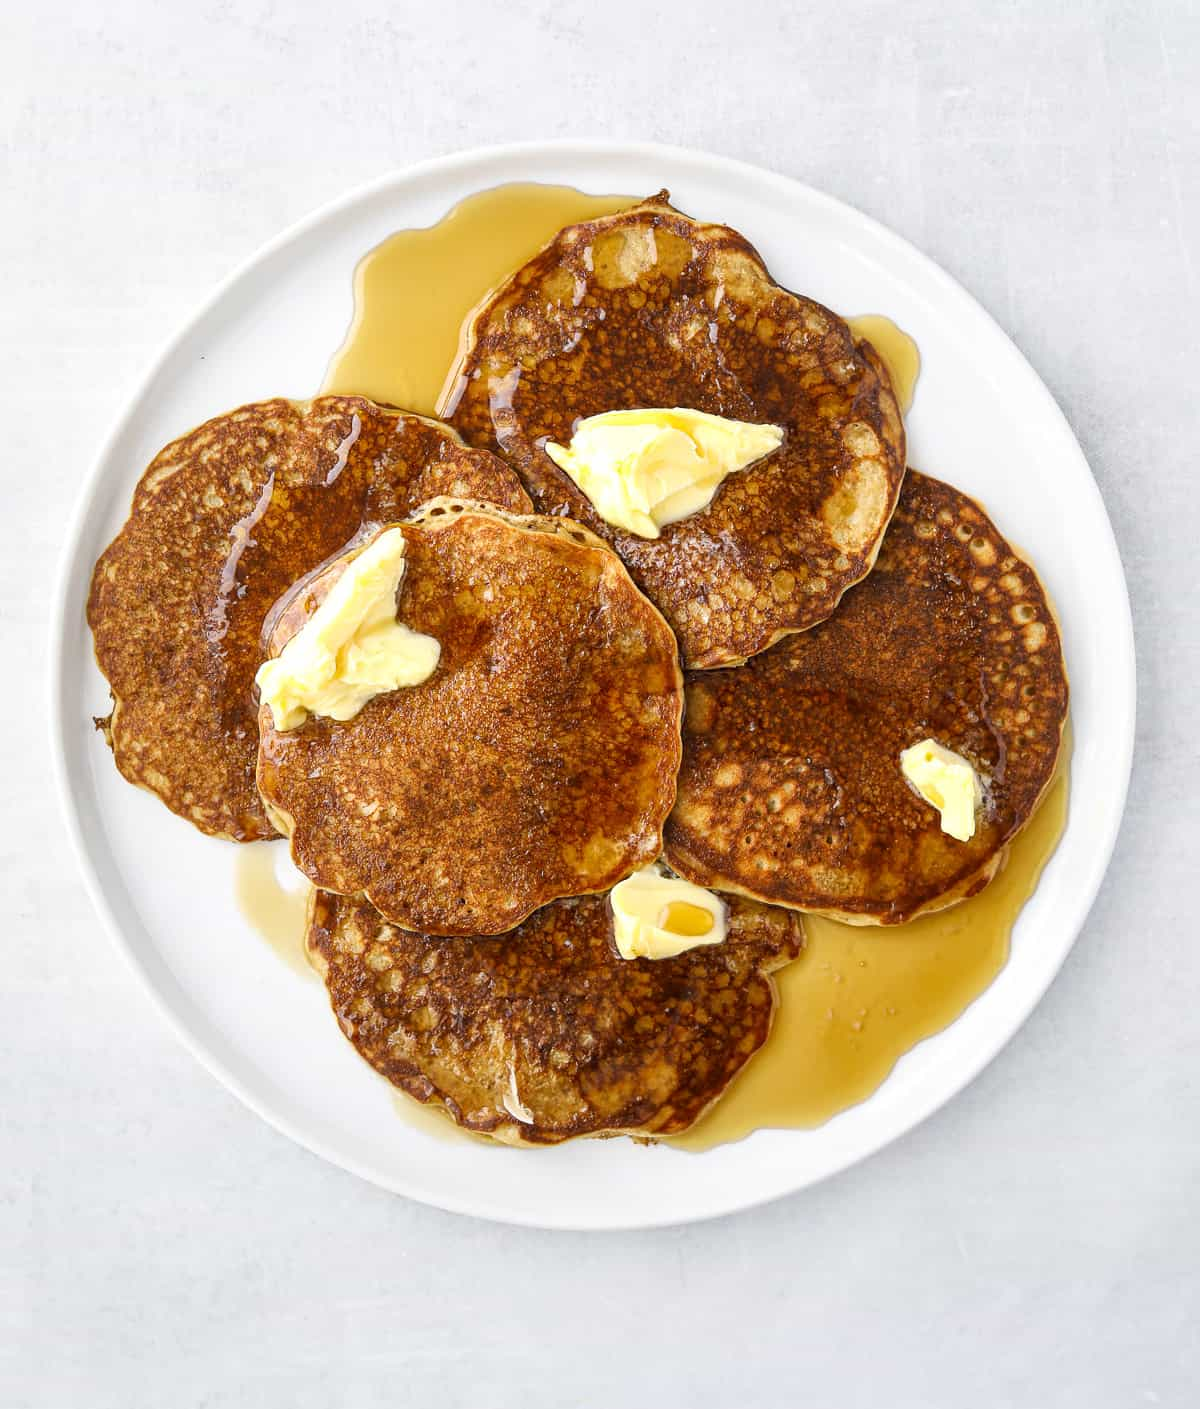 five oat flour pancakes on a white plate topped with butter and maple syrup